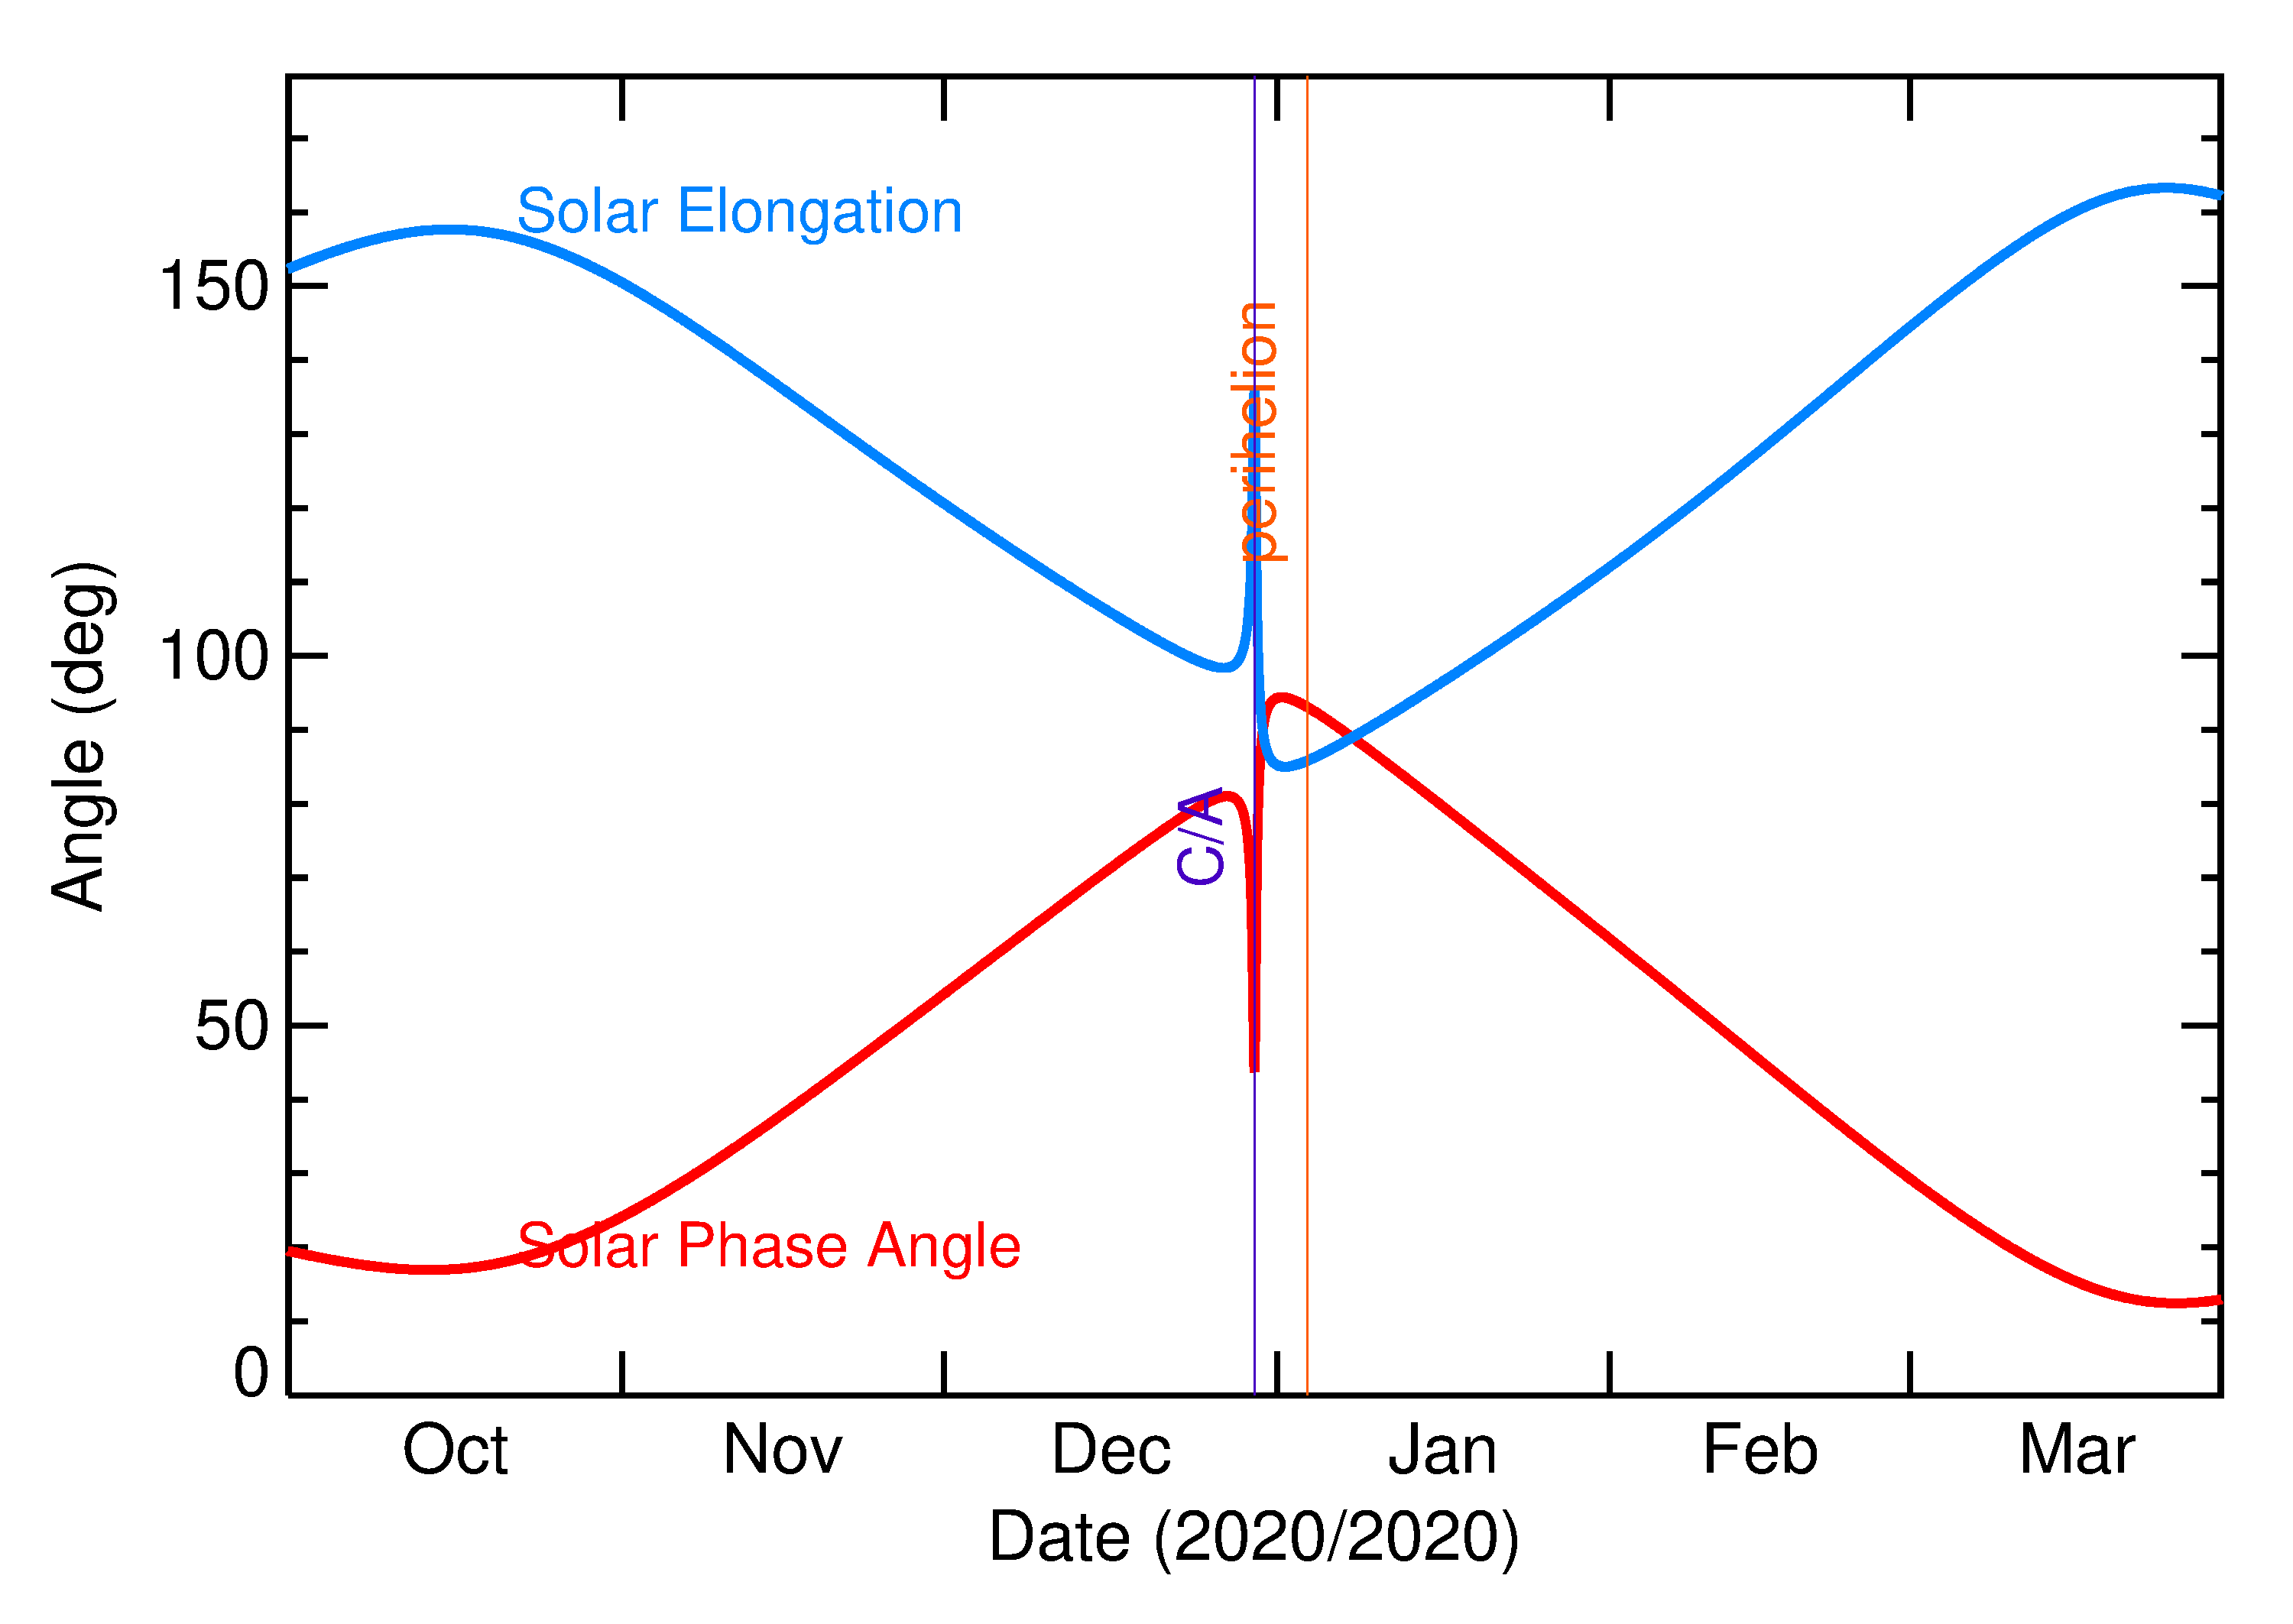 Solar Elongation and Solar Phase Angle of 2020 YS4 in the months around closest approach